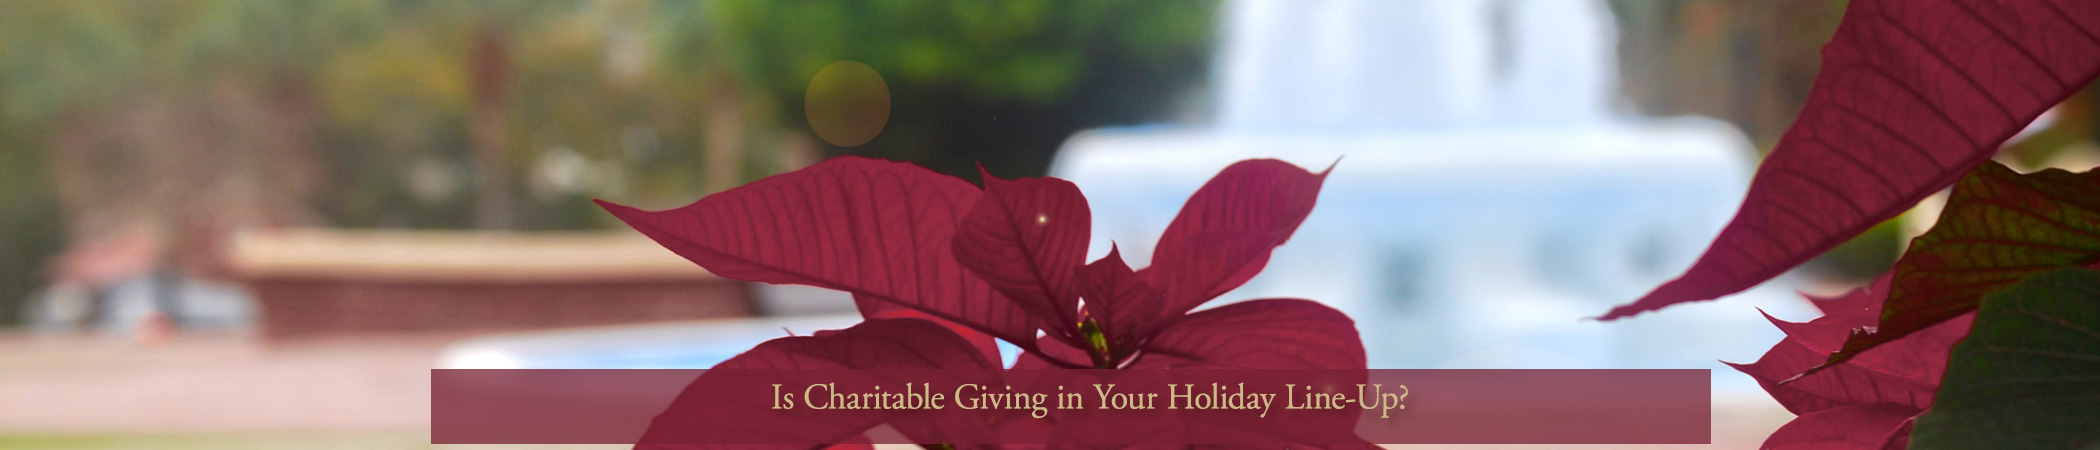 Is Charitable Giving in Your Holiday Line-up?